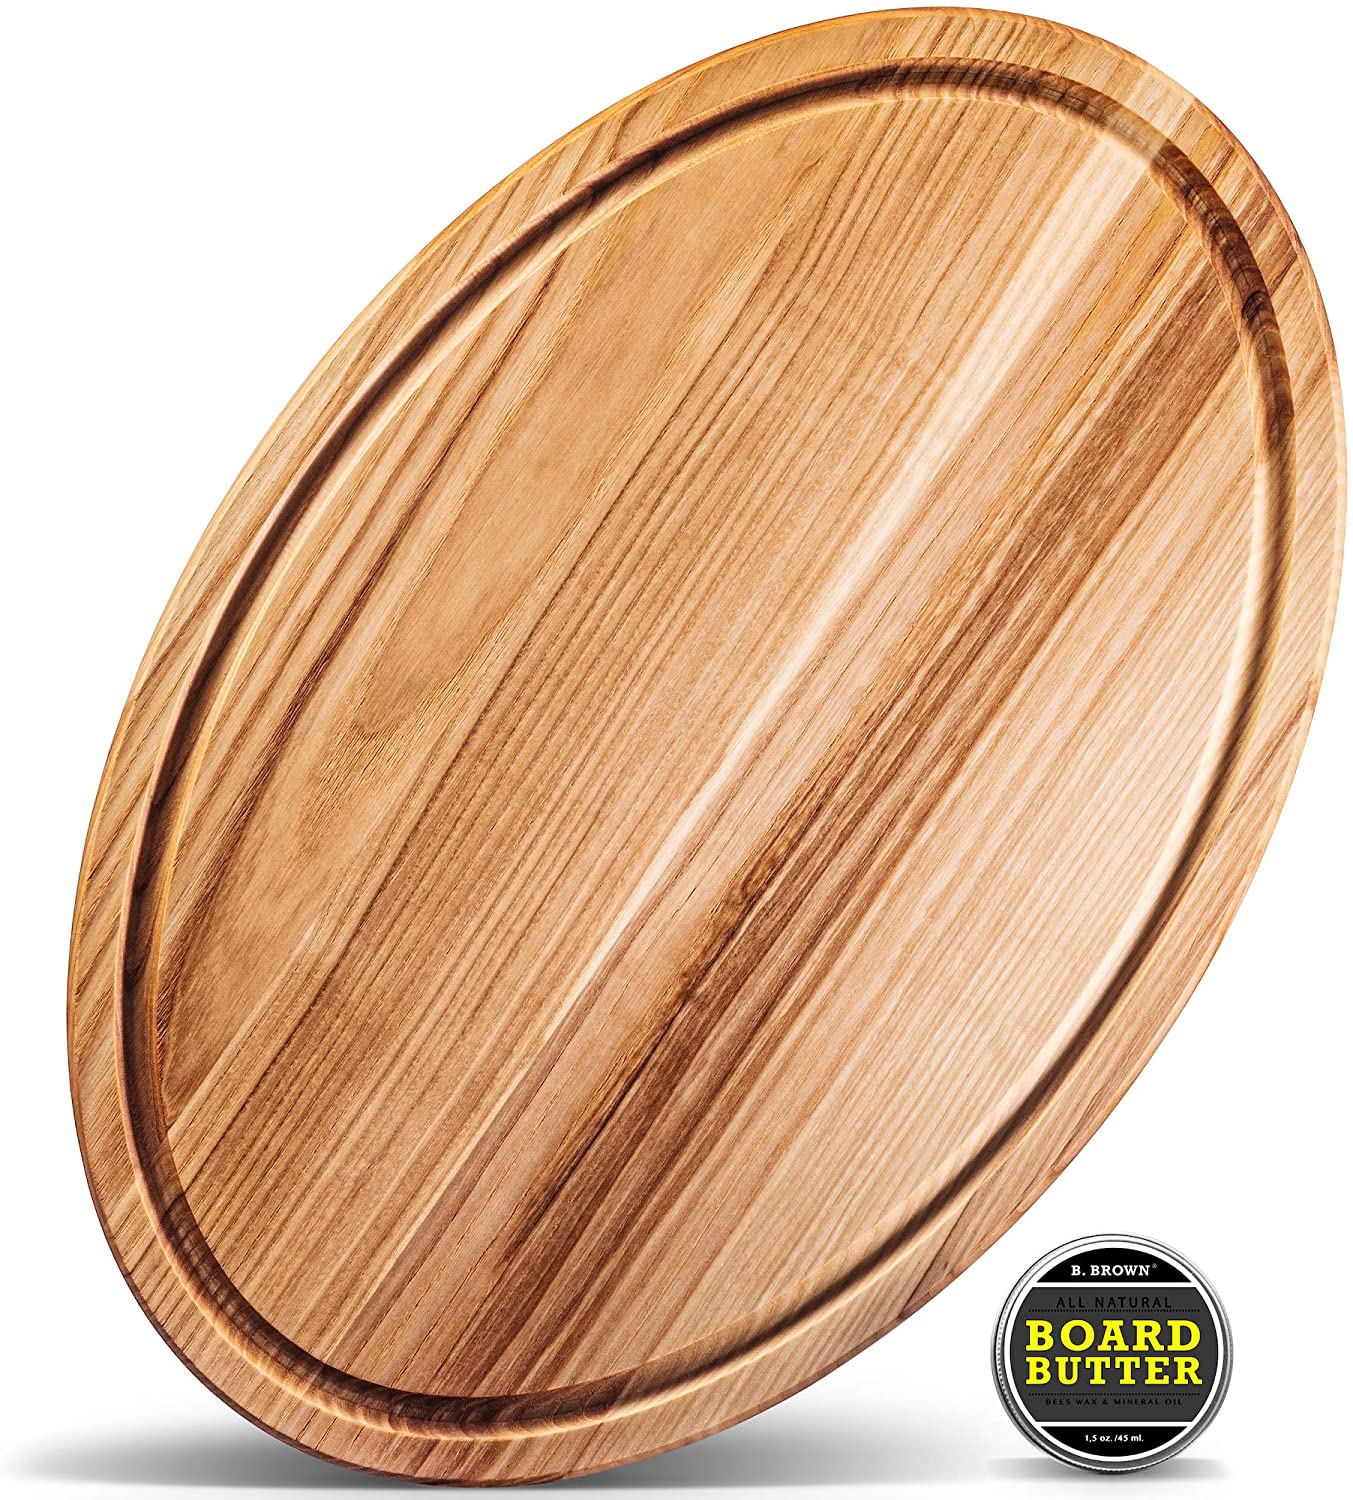 B.Brown LARGE Wood OVAL Cutting Board With Juice Groove For Kitchen 17.5x11.5 inches From Natural HARDWOOD For Use As: Butcher Block